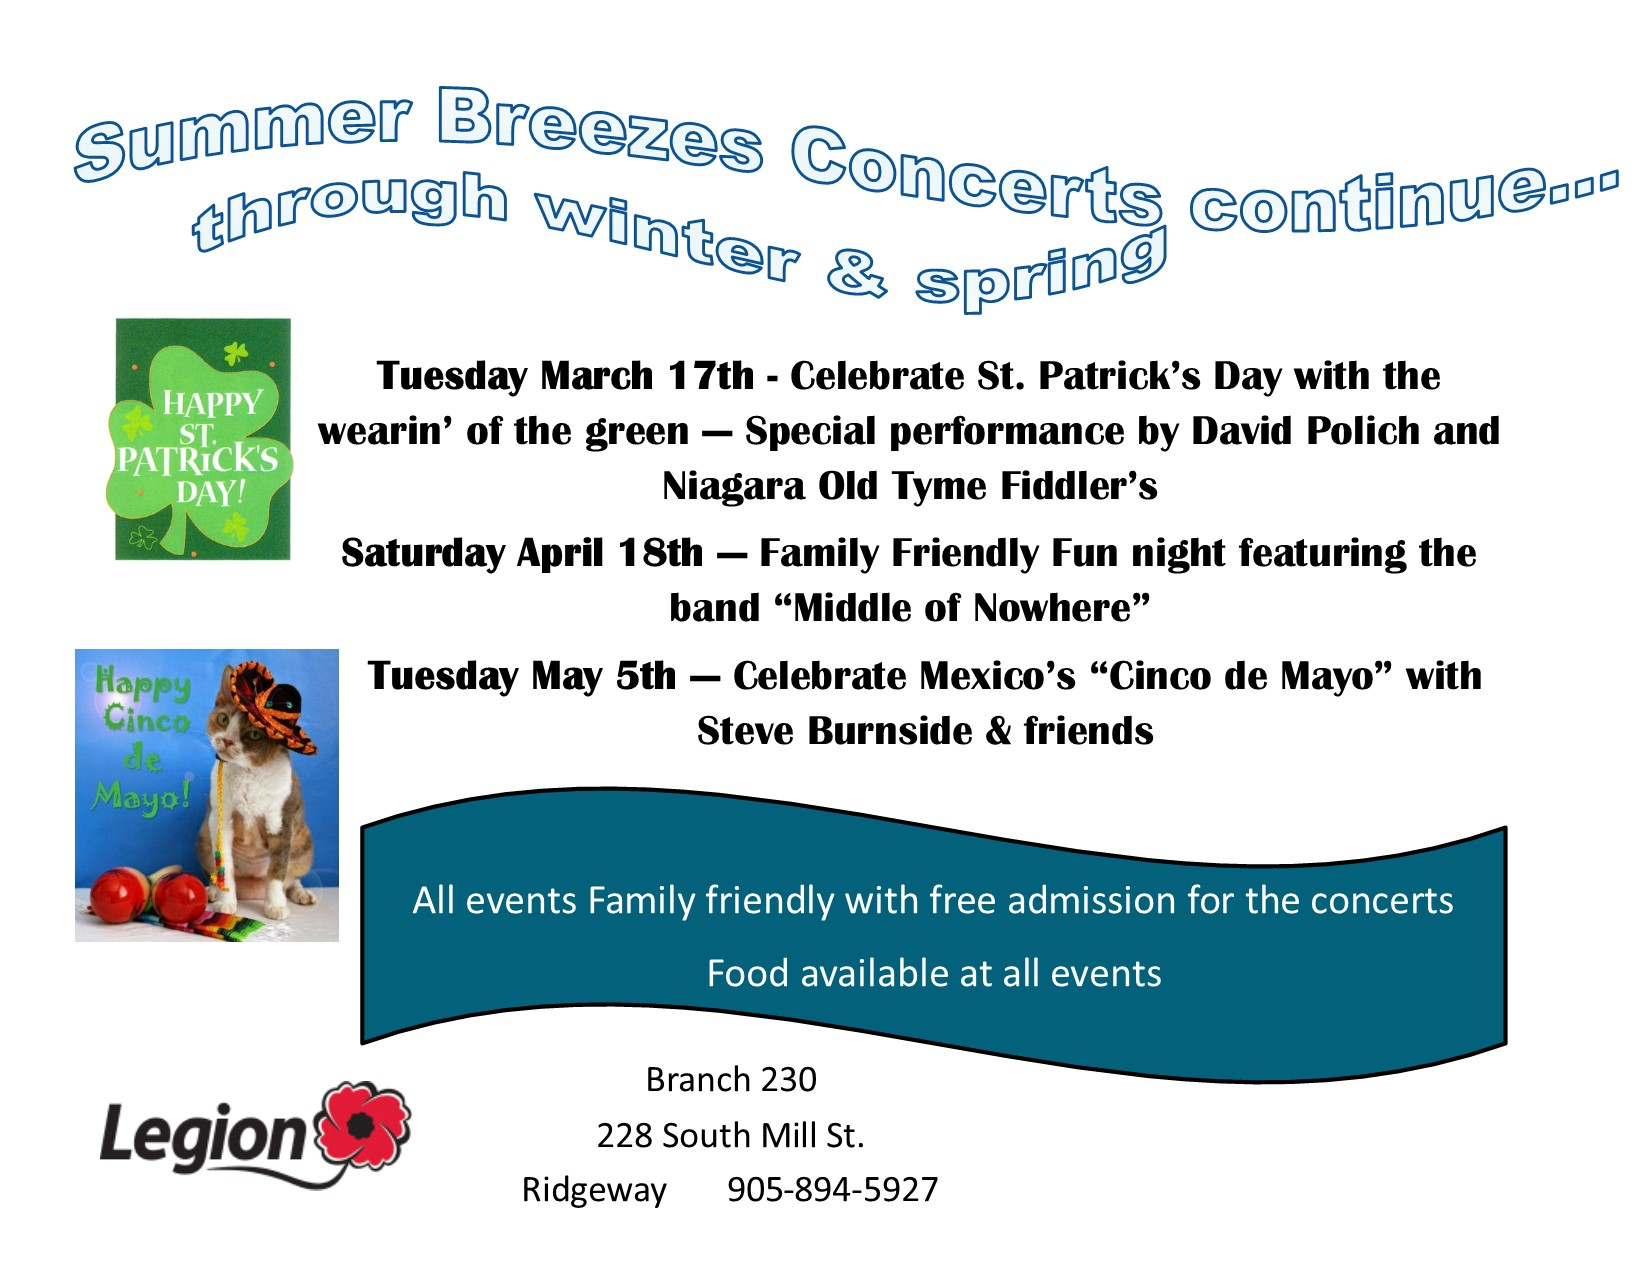 Concerts at our Legion